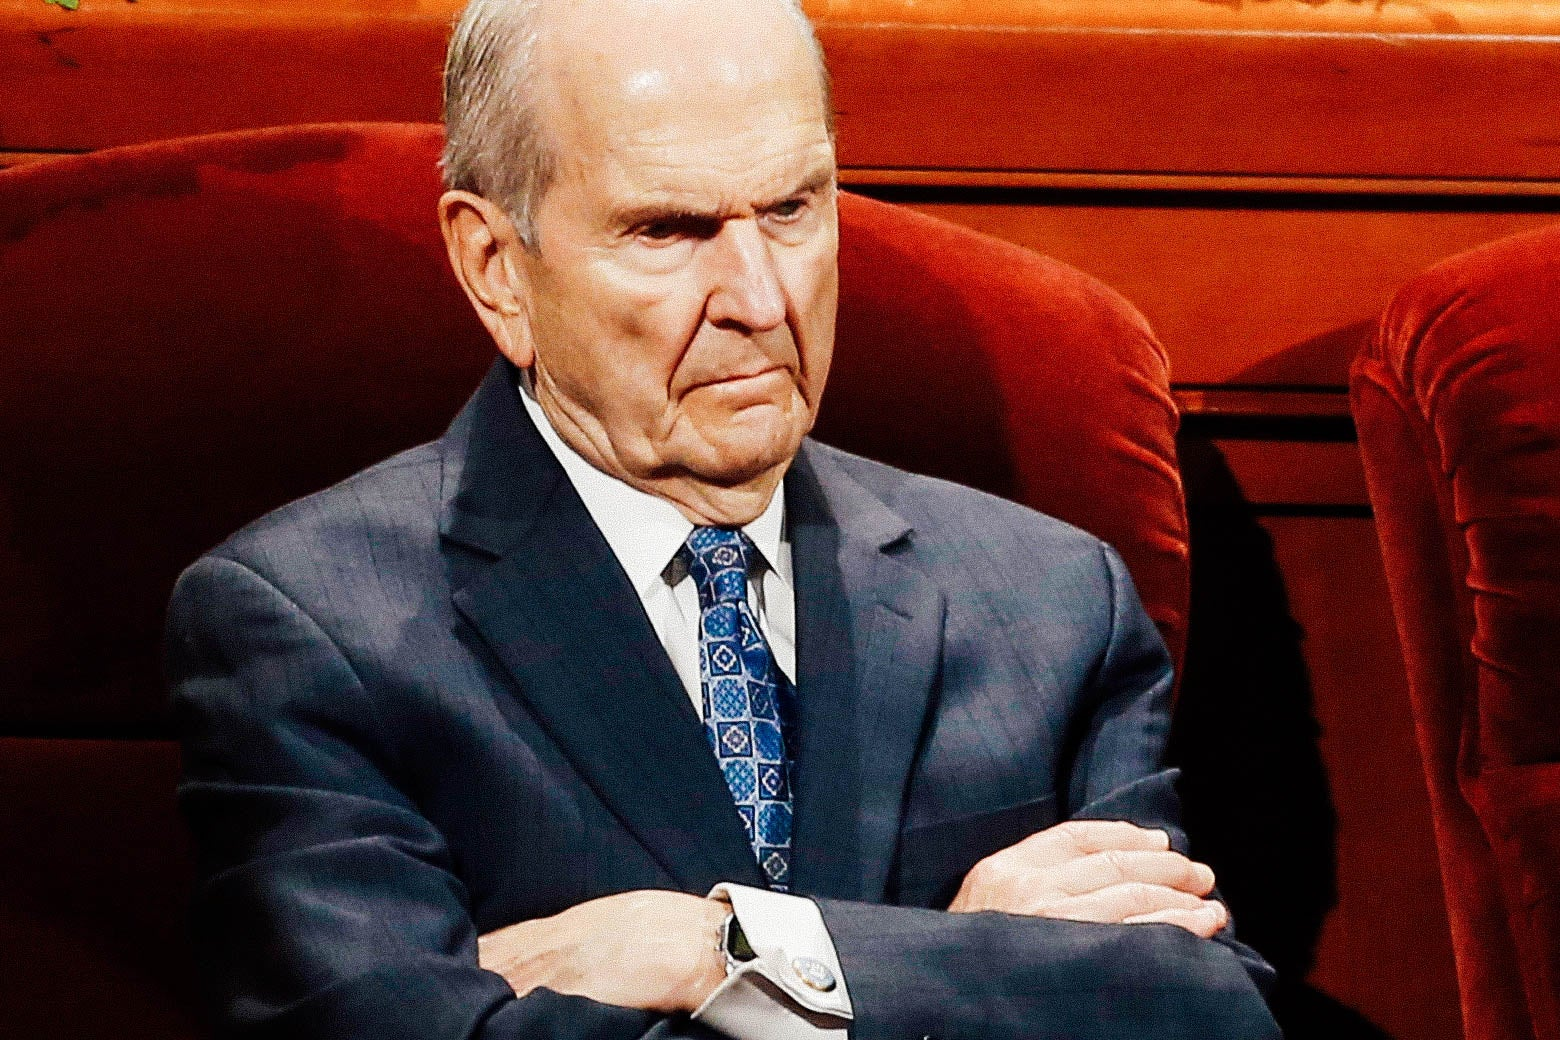 Russell Nelson seated, with his arms crossed.